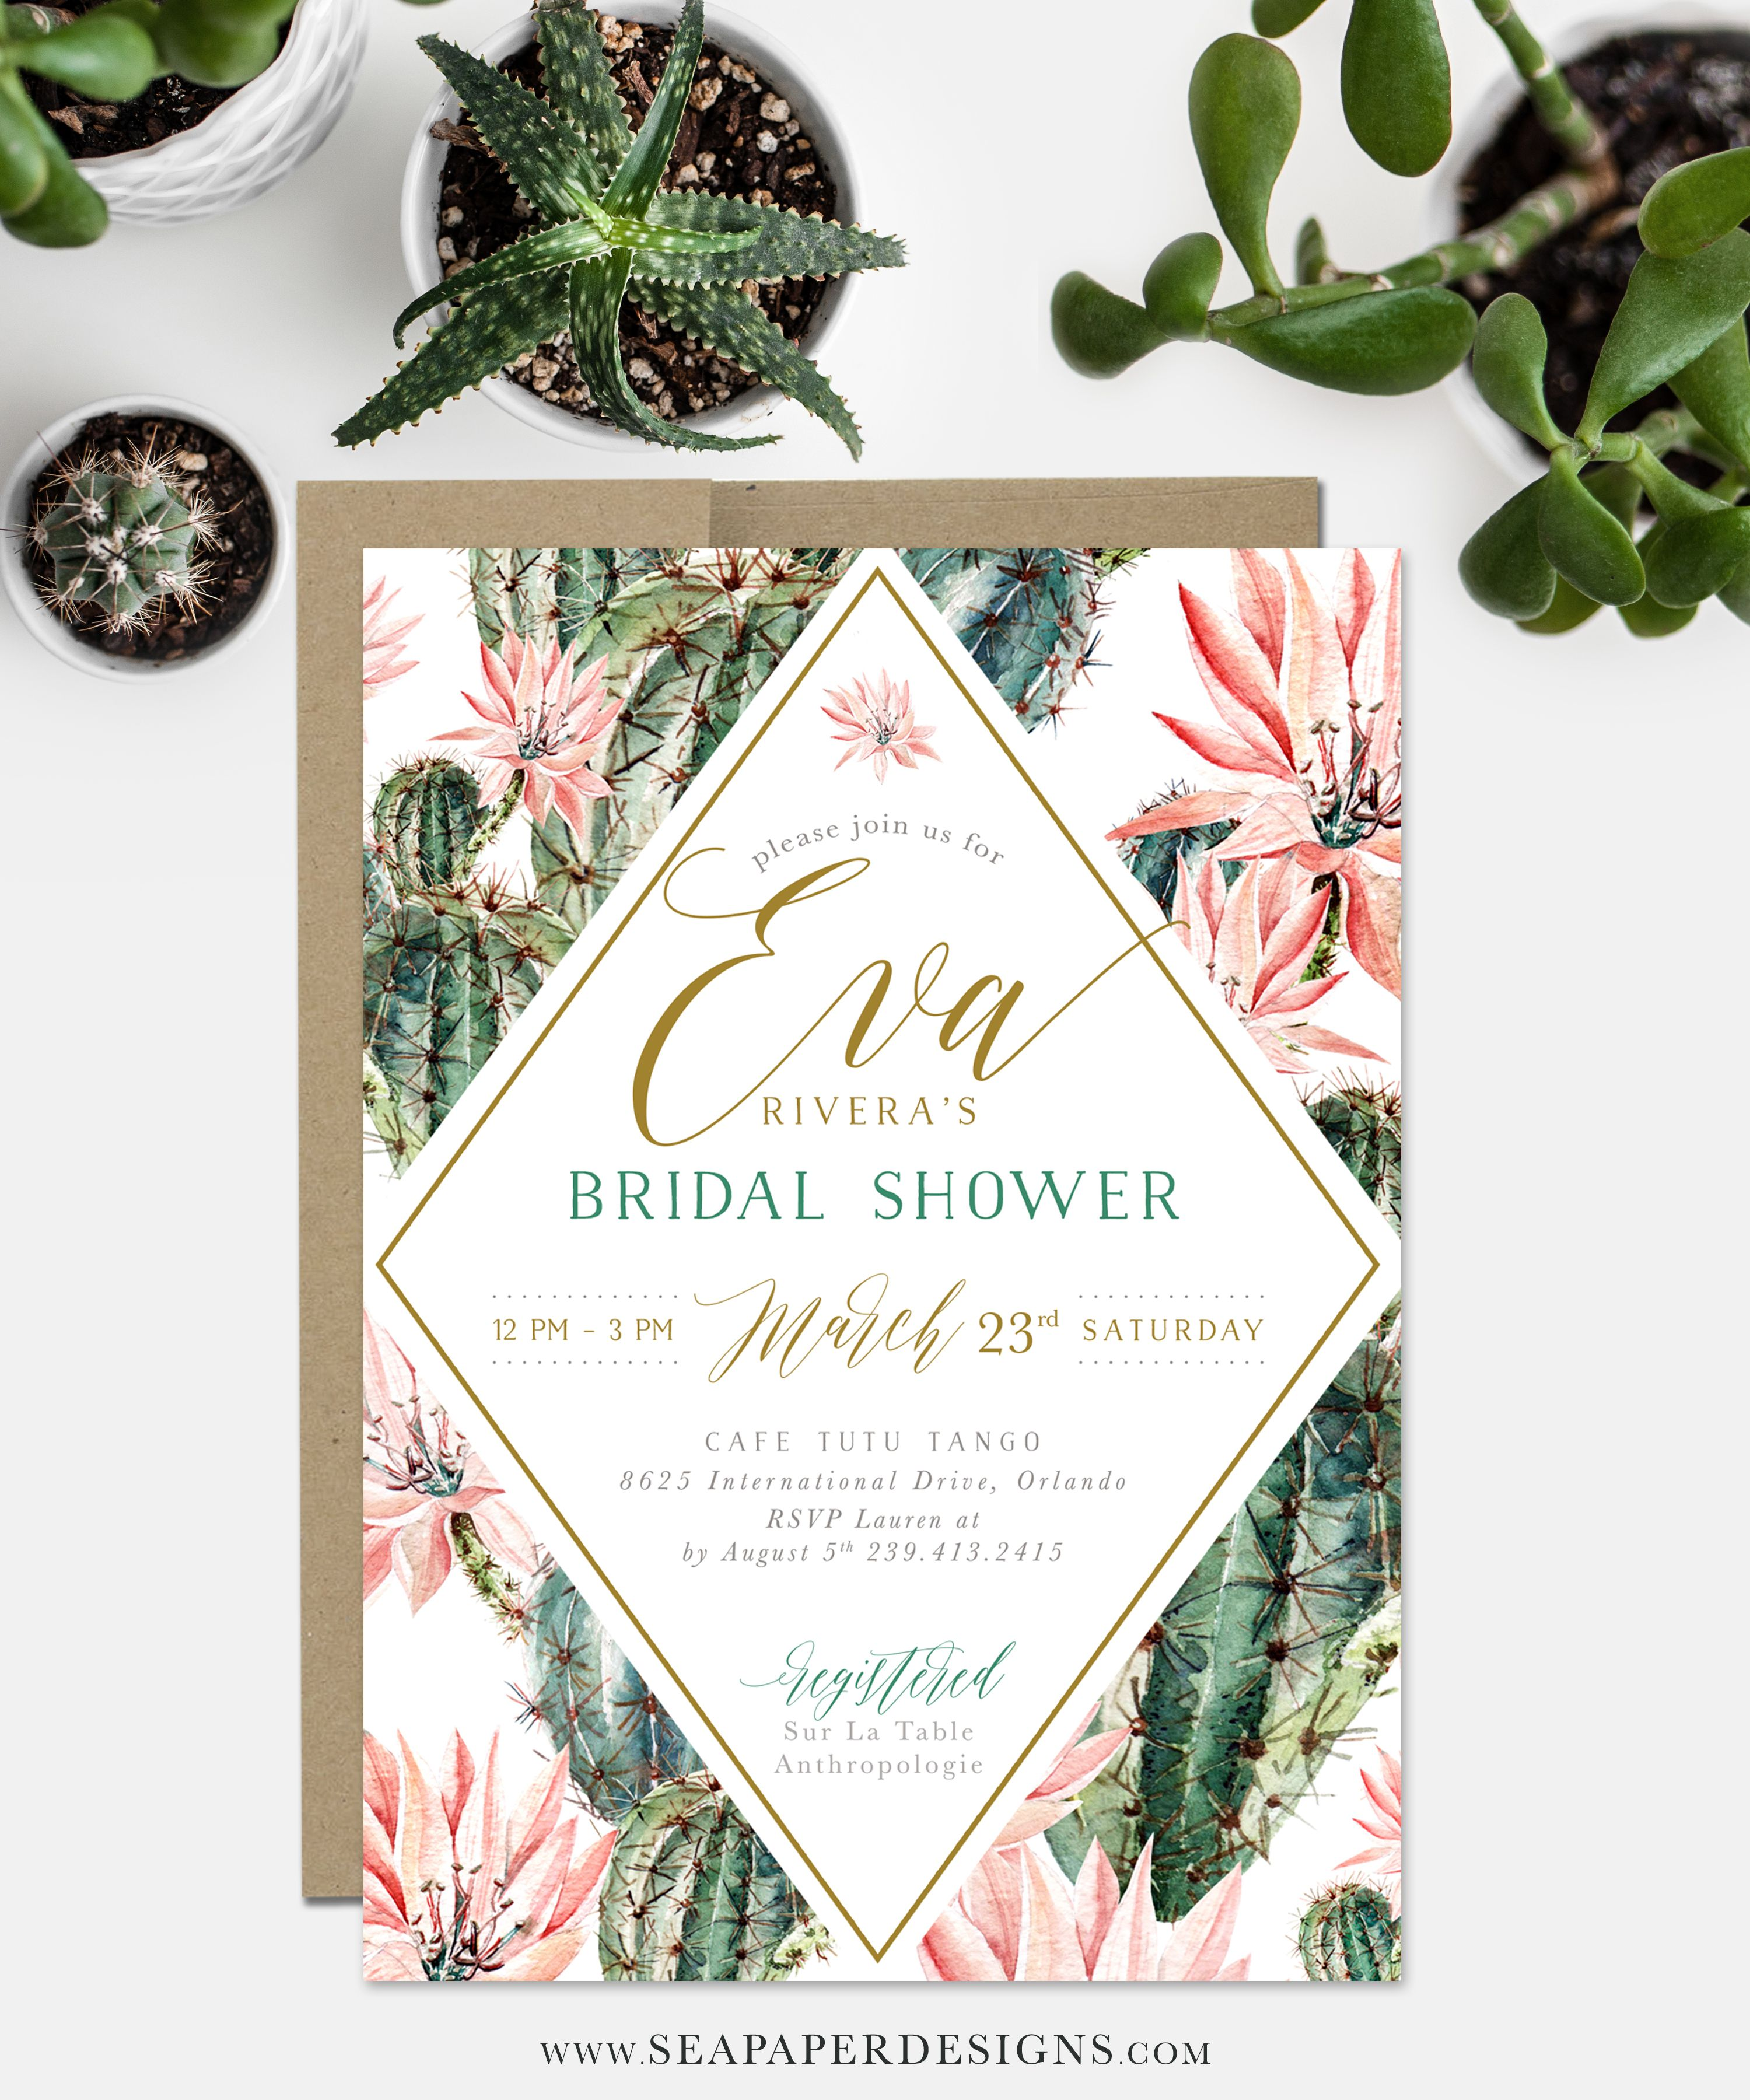 cactus flower bridal shower invitation boho invite matching party items available wwwseapaperdesignscom